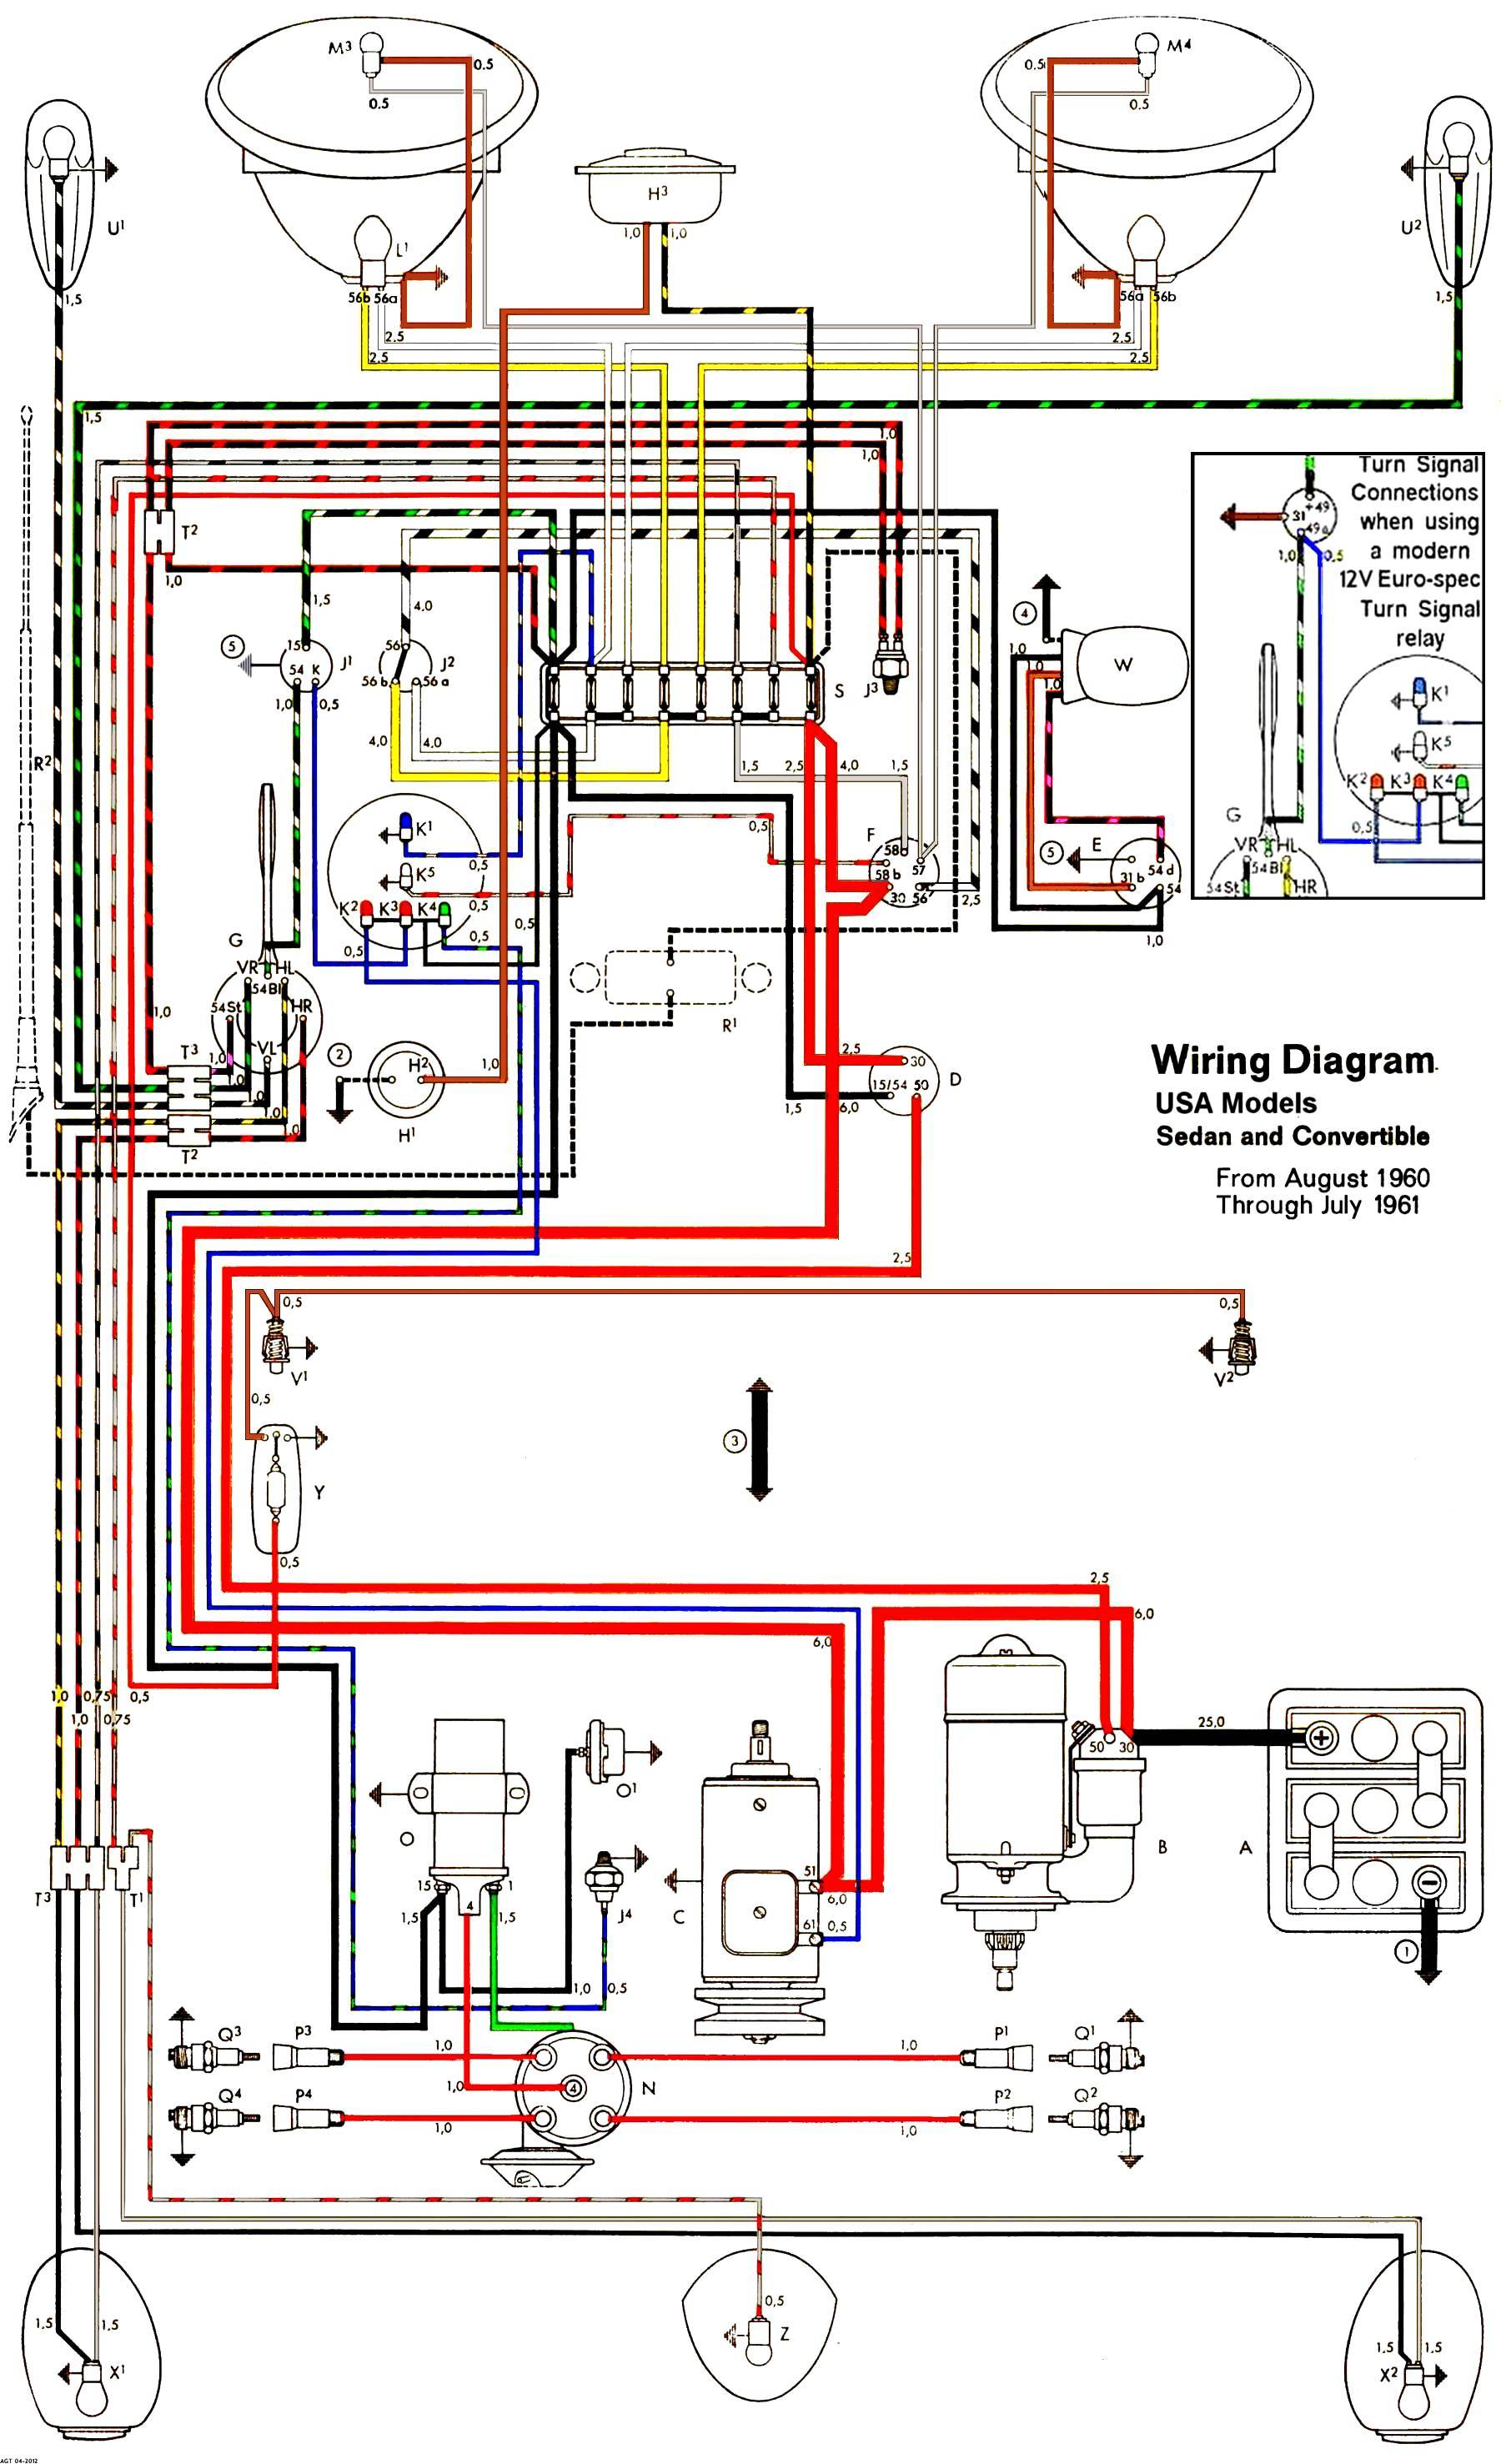 2000 Isuzu Alternator Wiring Diagram